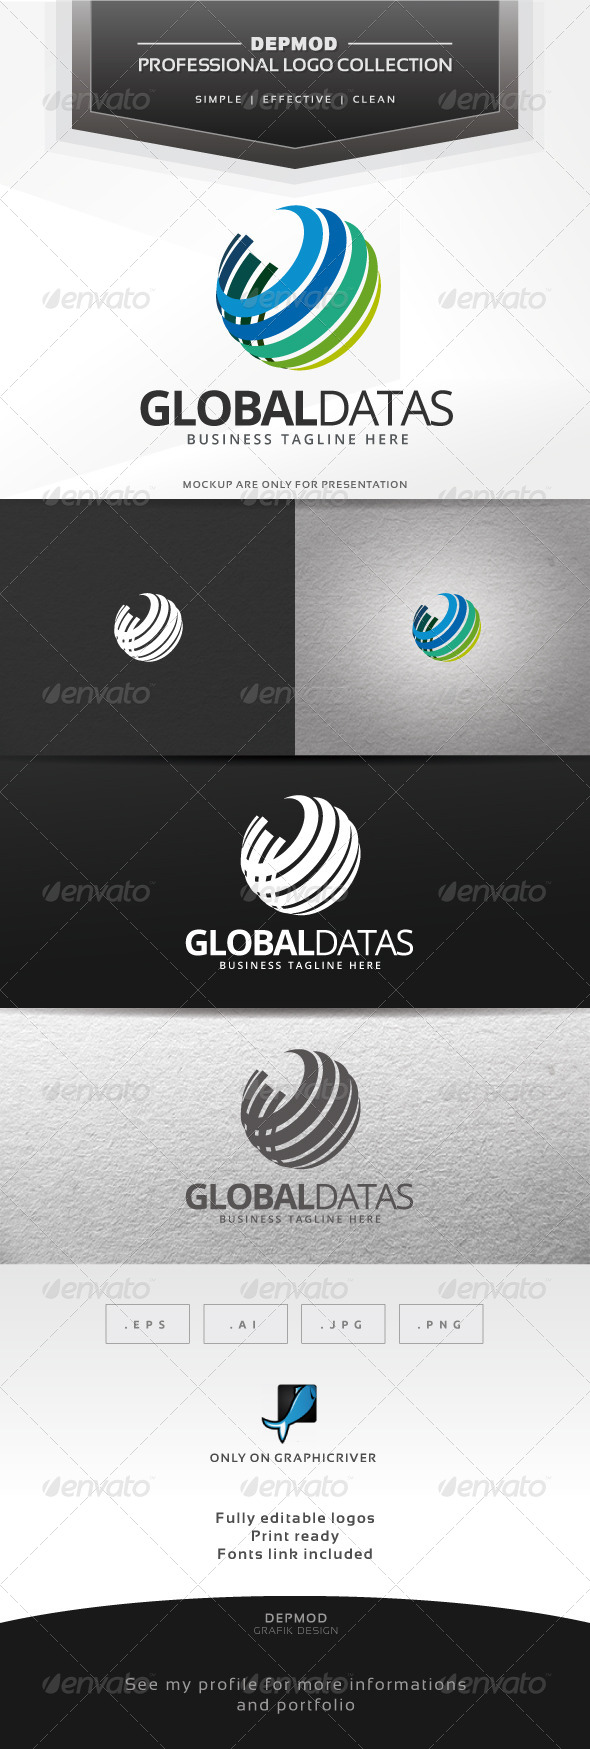 GraphicRiver Global Datas Logo 6768813